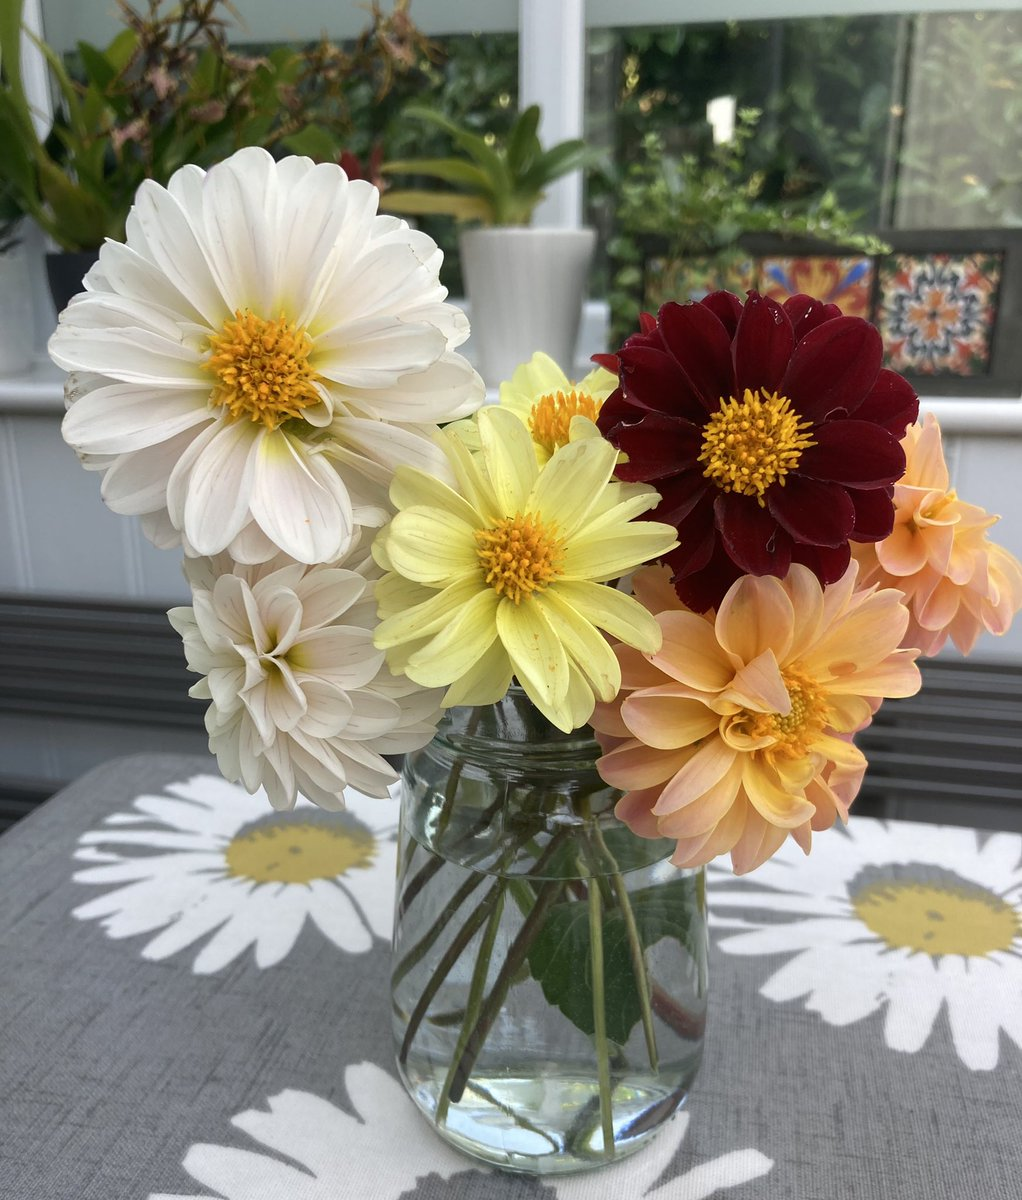 Have a wonderful day everyone. Lots of smiles ☺️ #DahliaLove from the garden 🌼🌿 https://t.co/1HNIIrNjuL